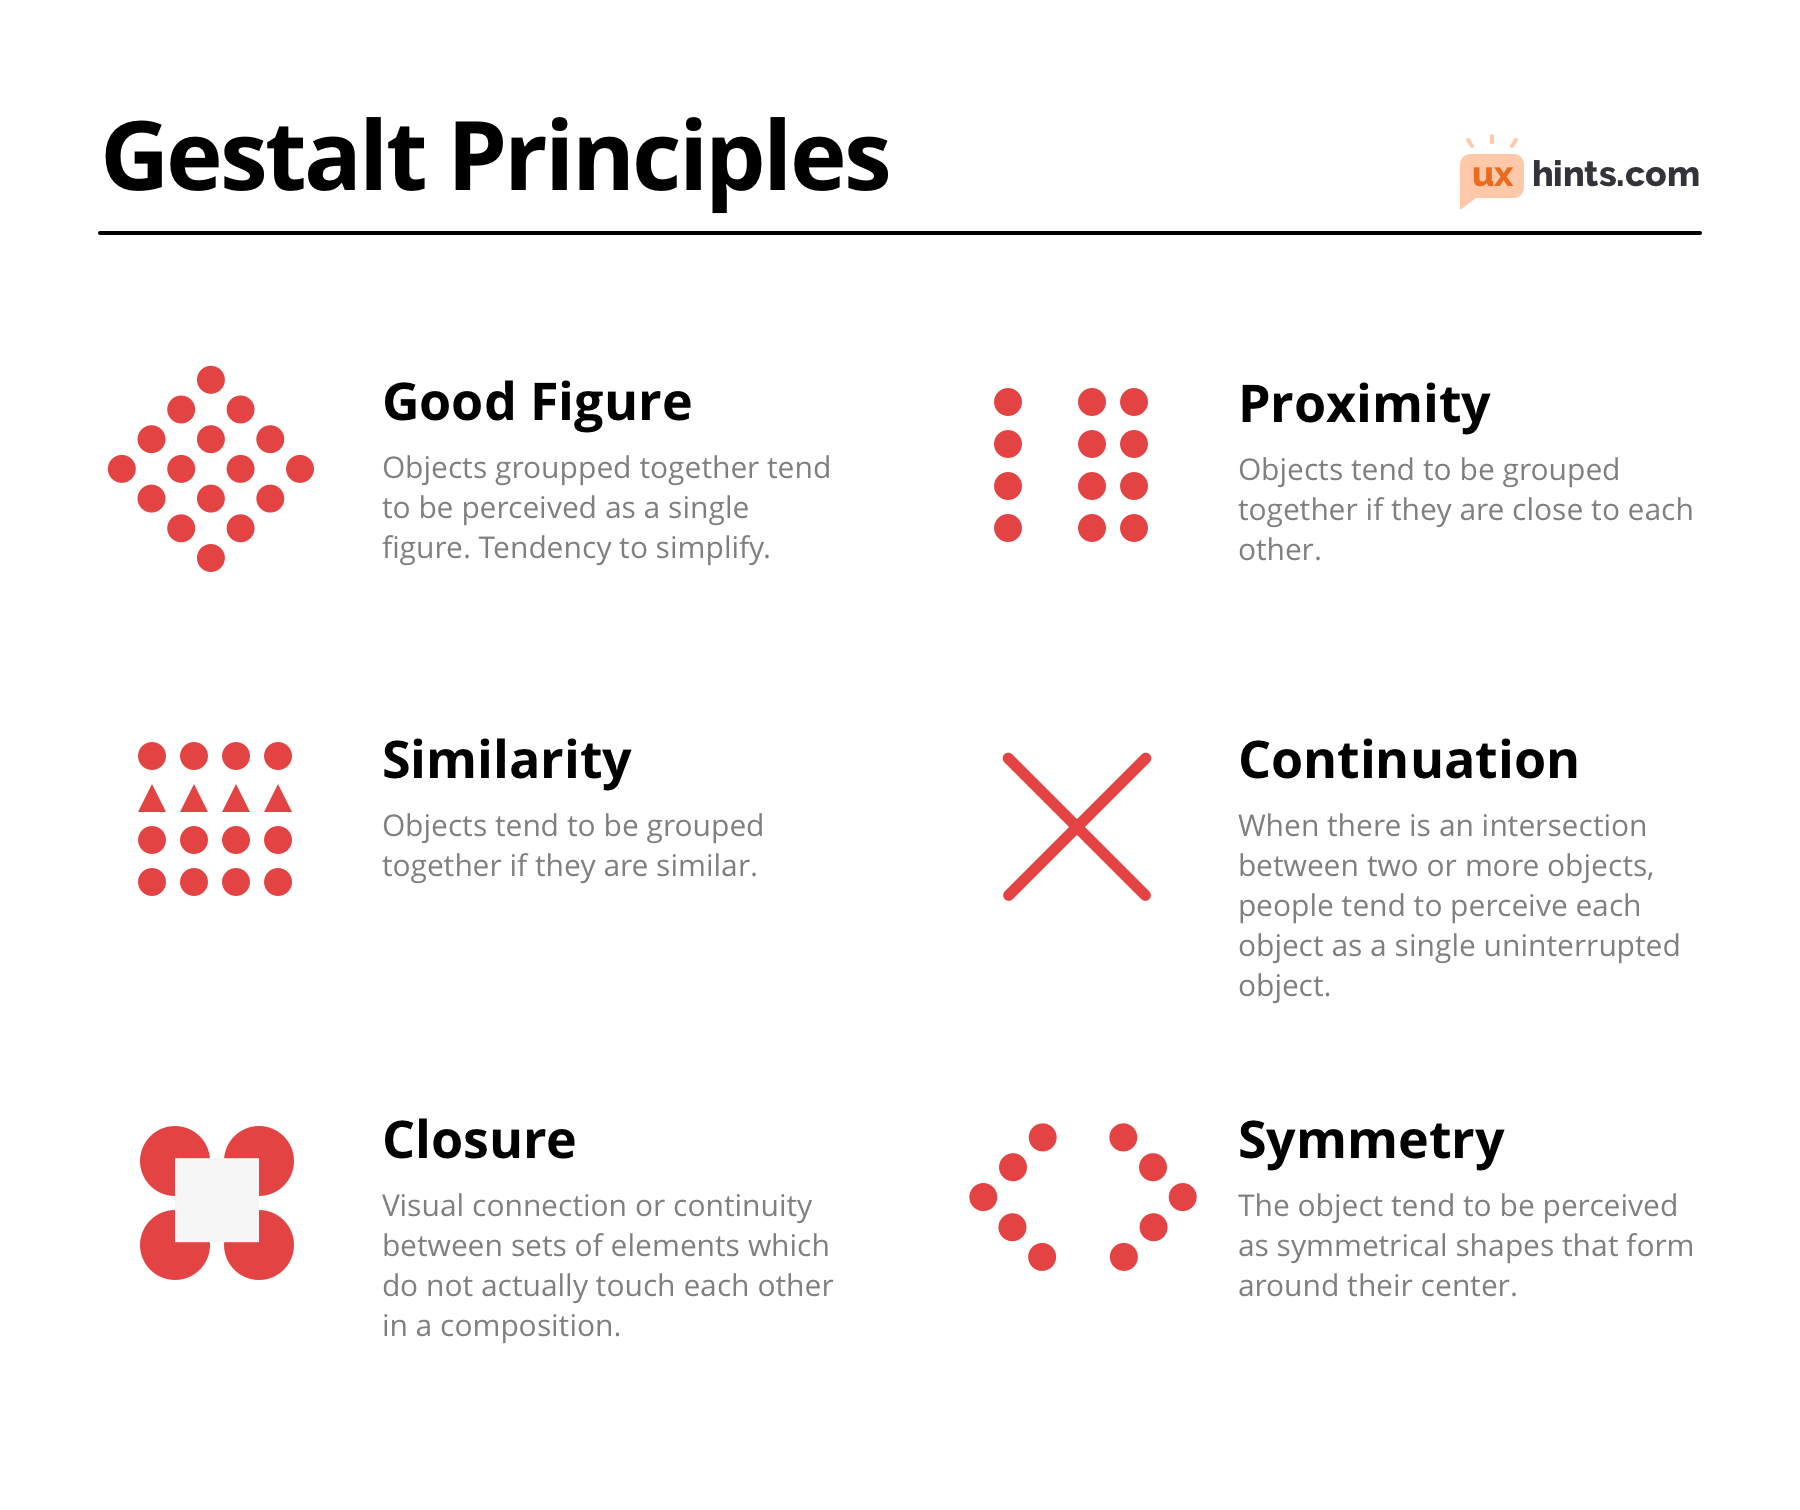 6 Gestalt Principles In Ux Design Ux Hints Web Design Graphic Design Tips Design Theory